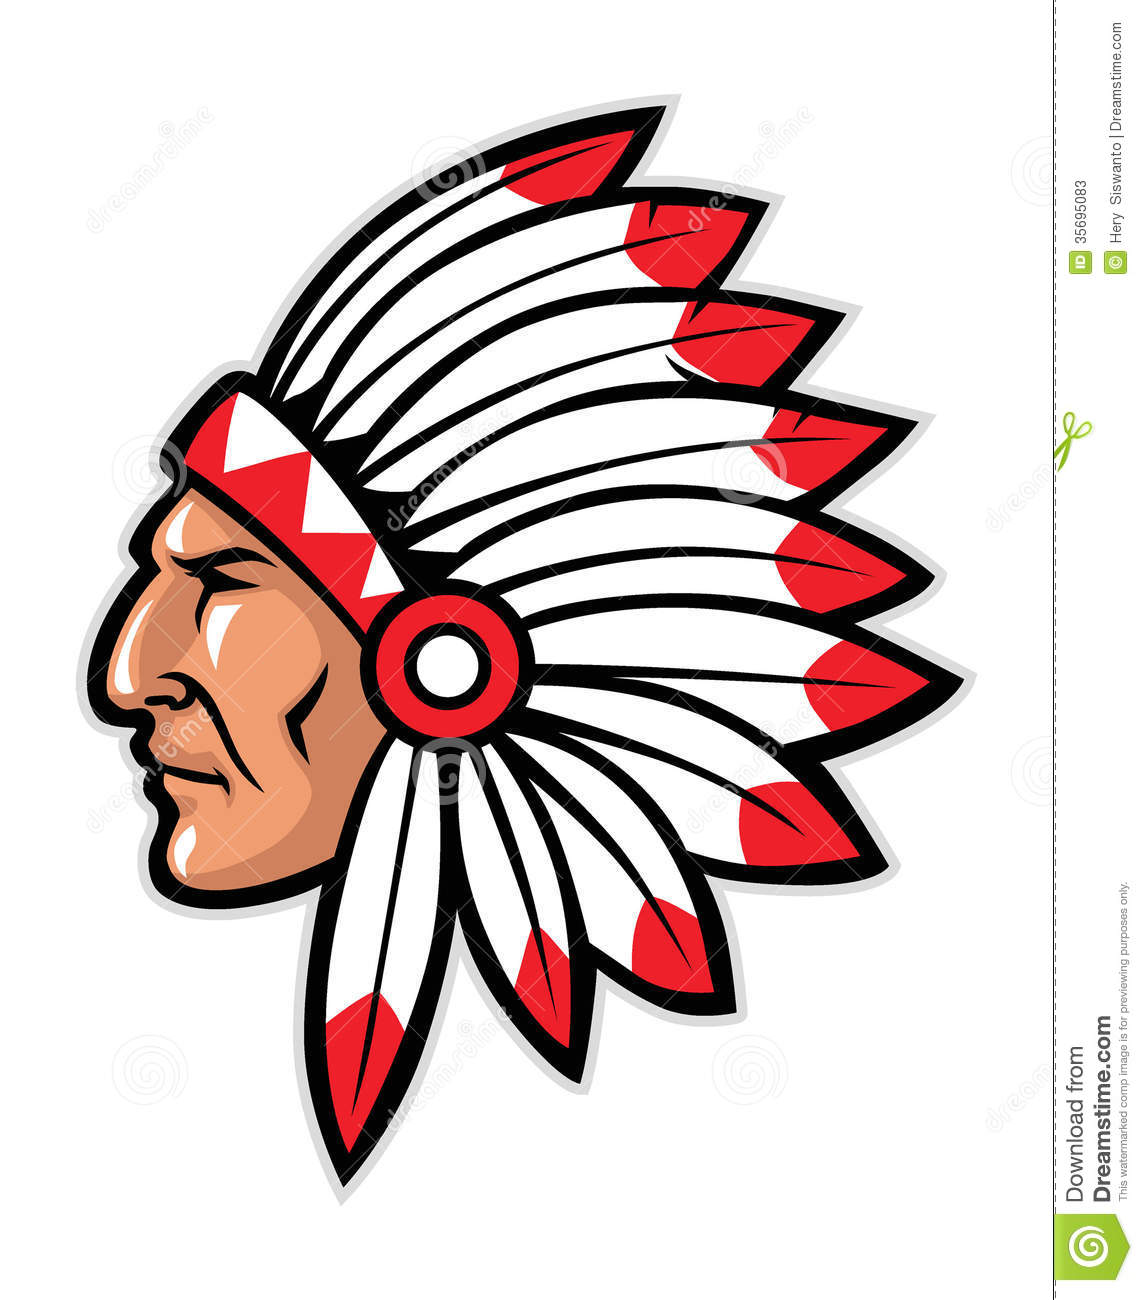 hight resolution of indian head mascot